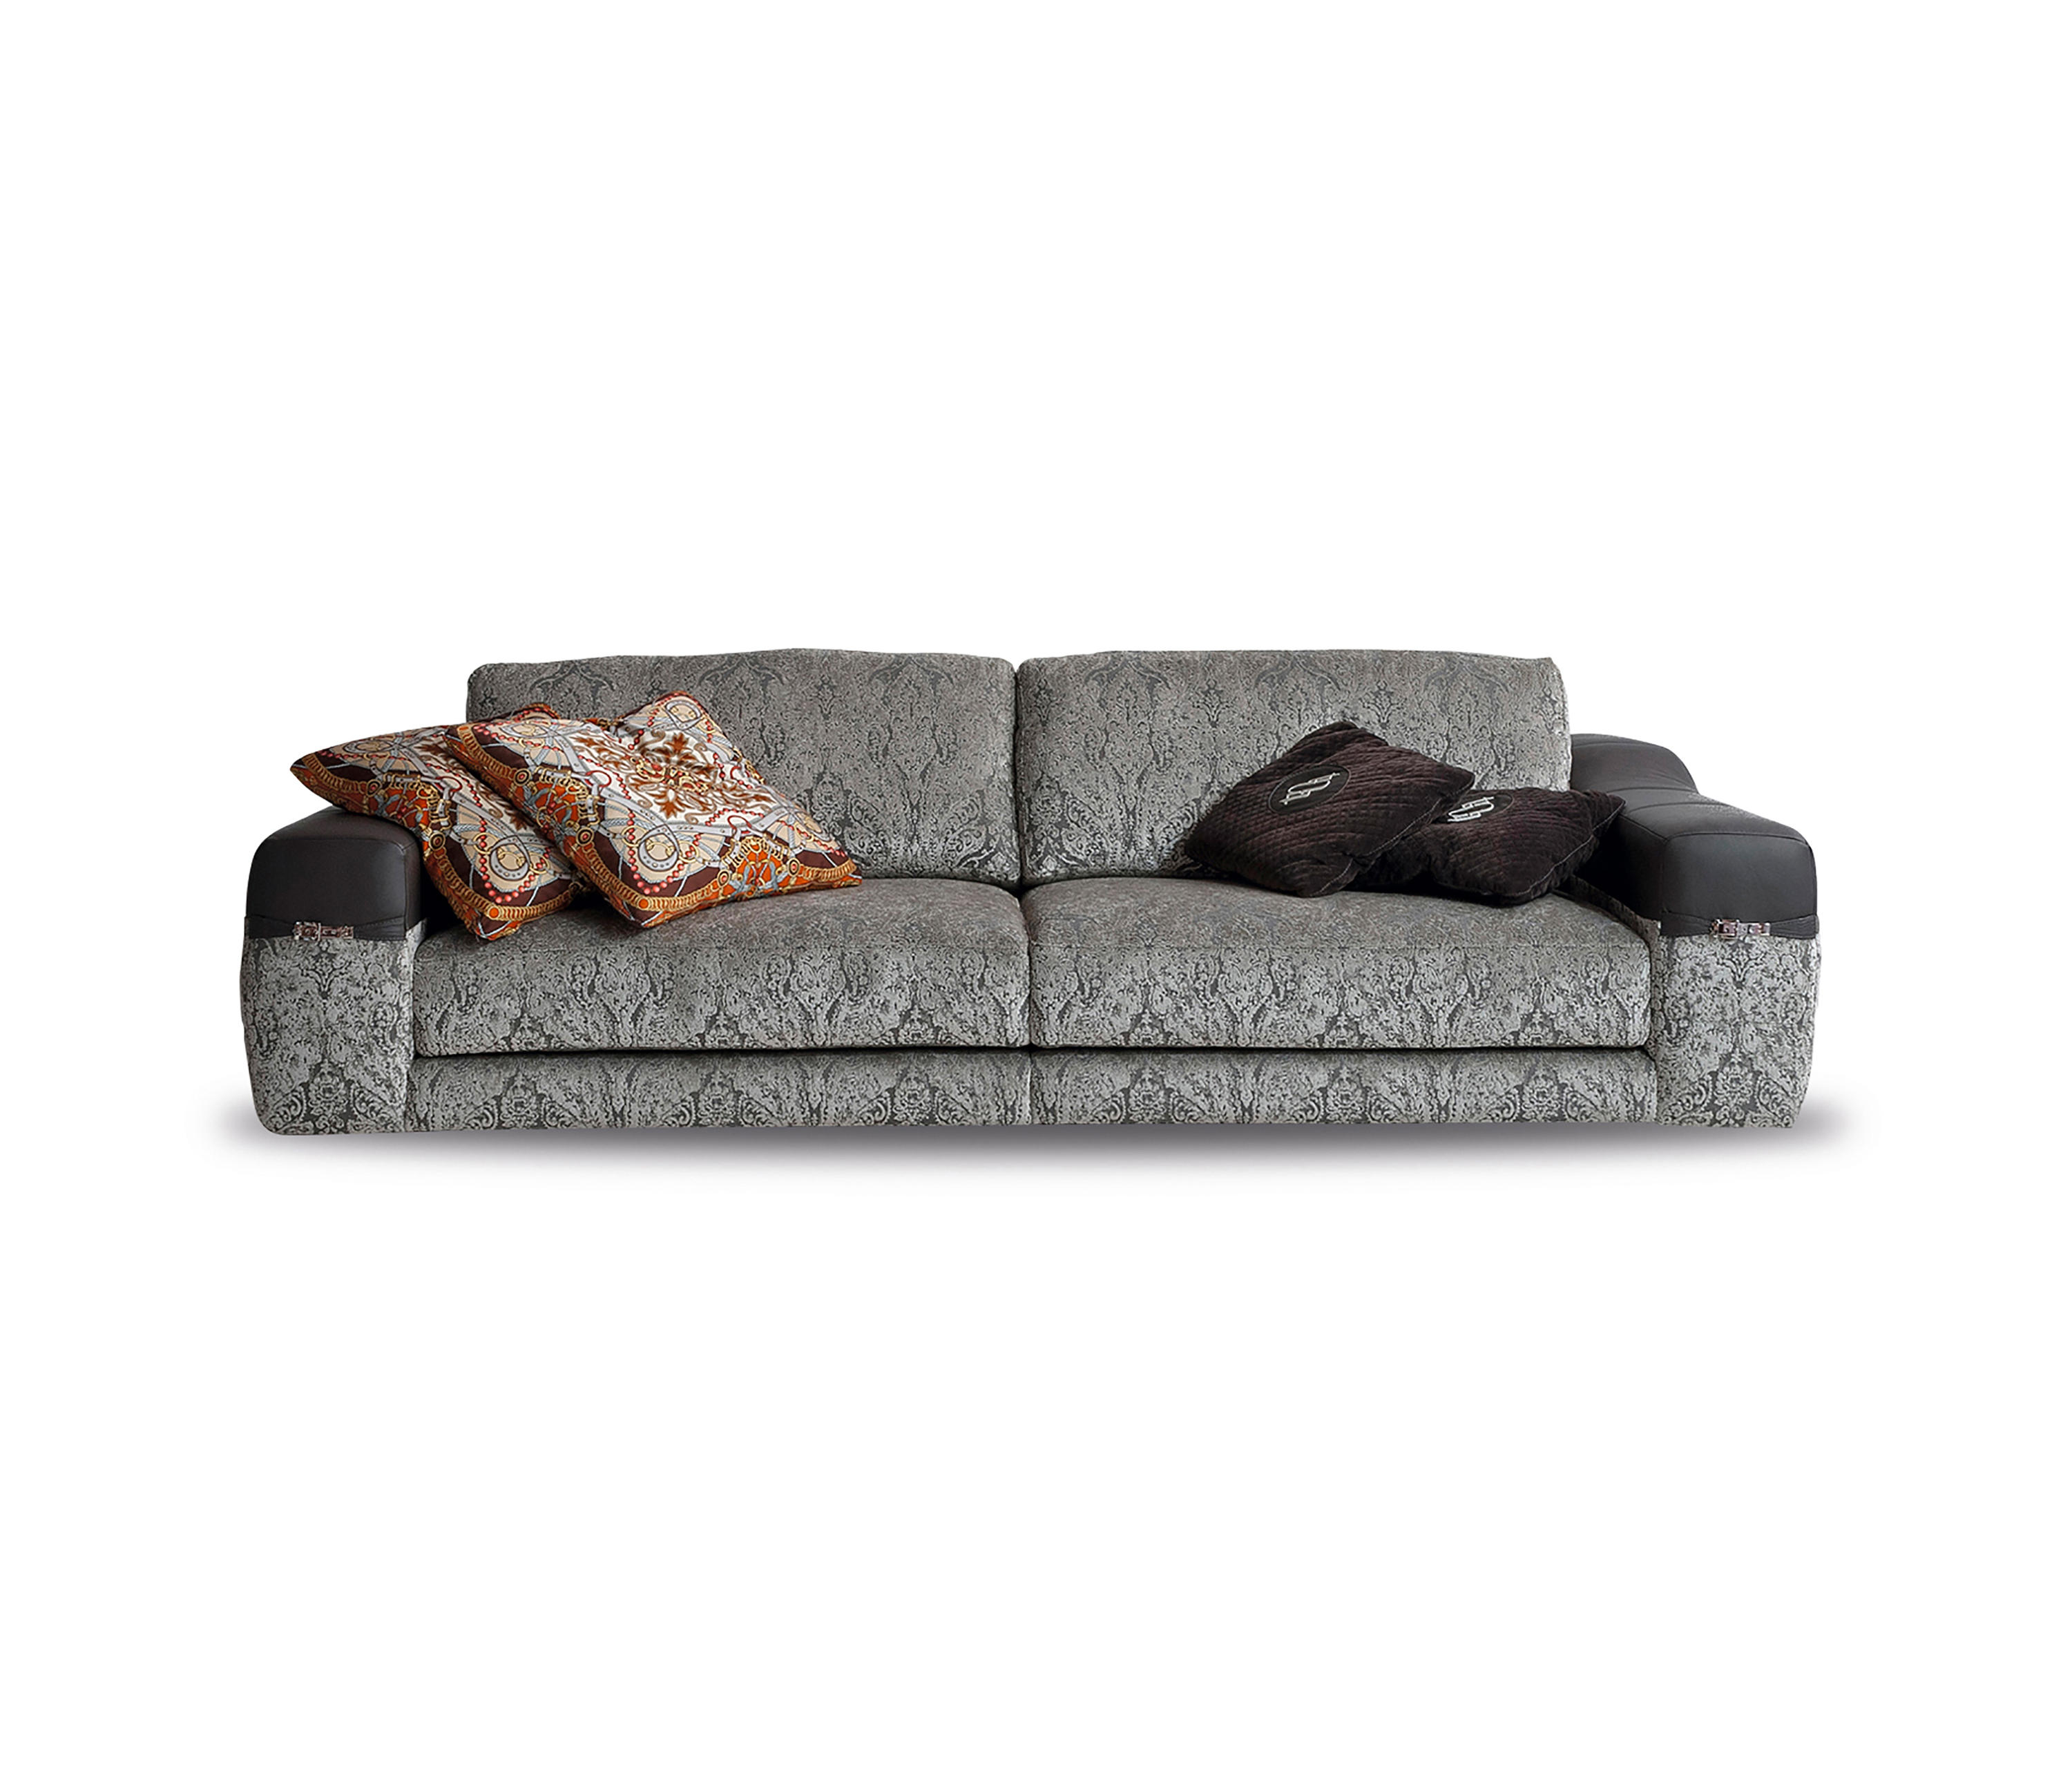 1731 SOFA Sofas from Tecni Nova